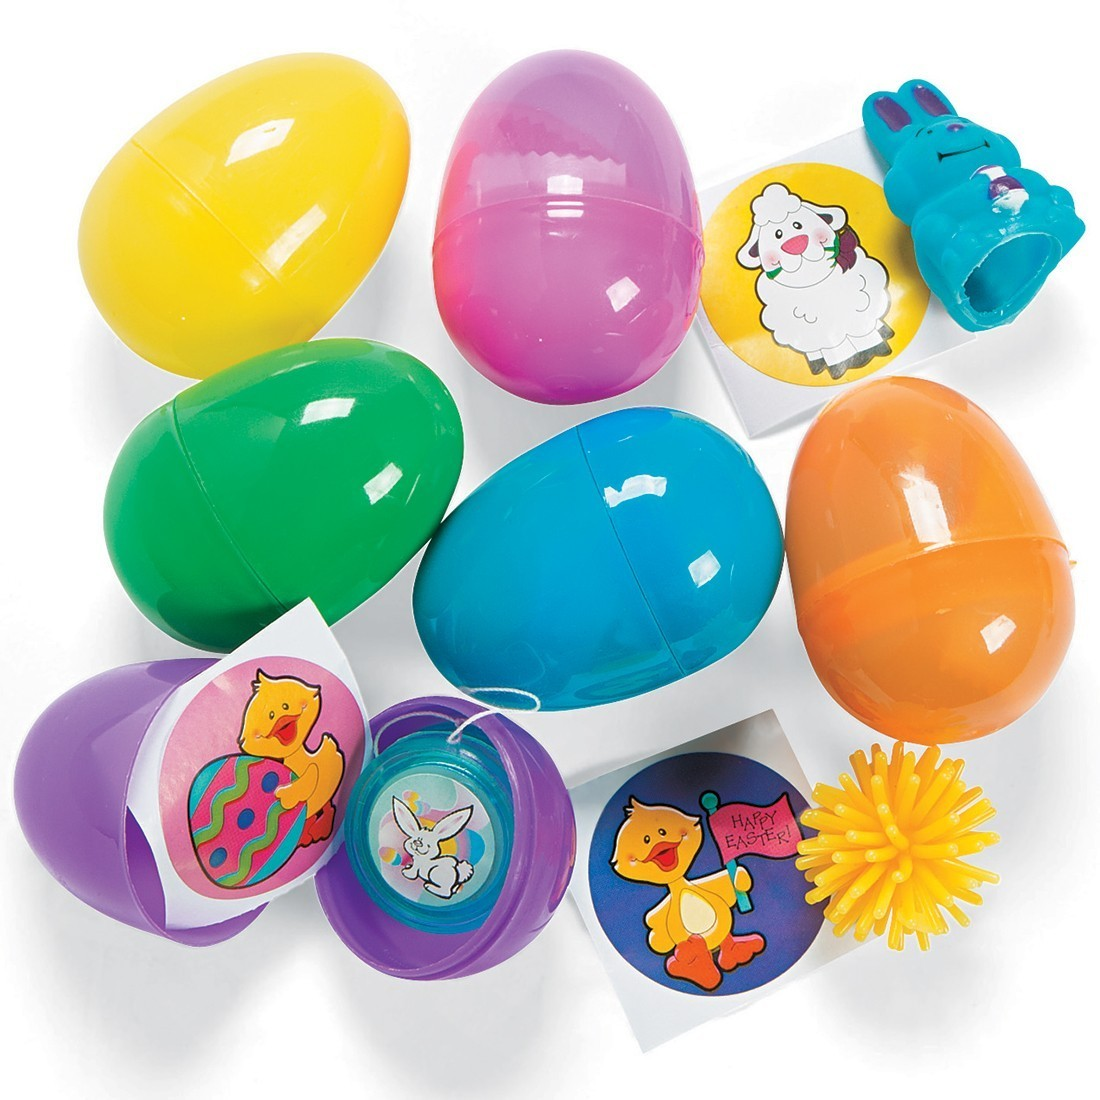 Toy Filled Easter Eggs [image]